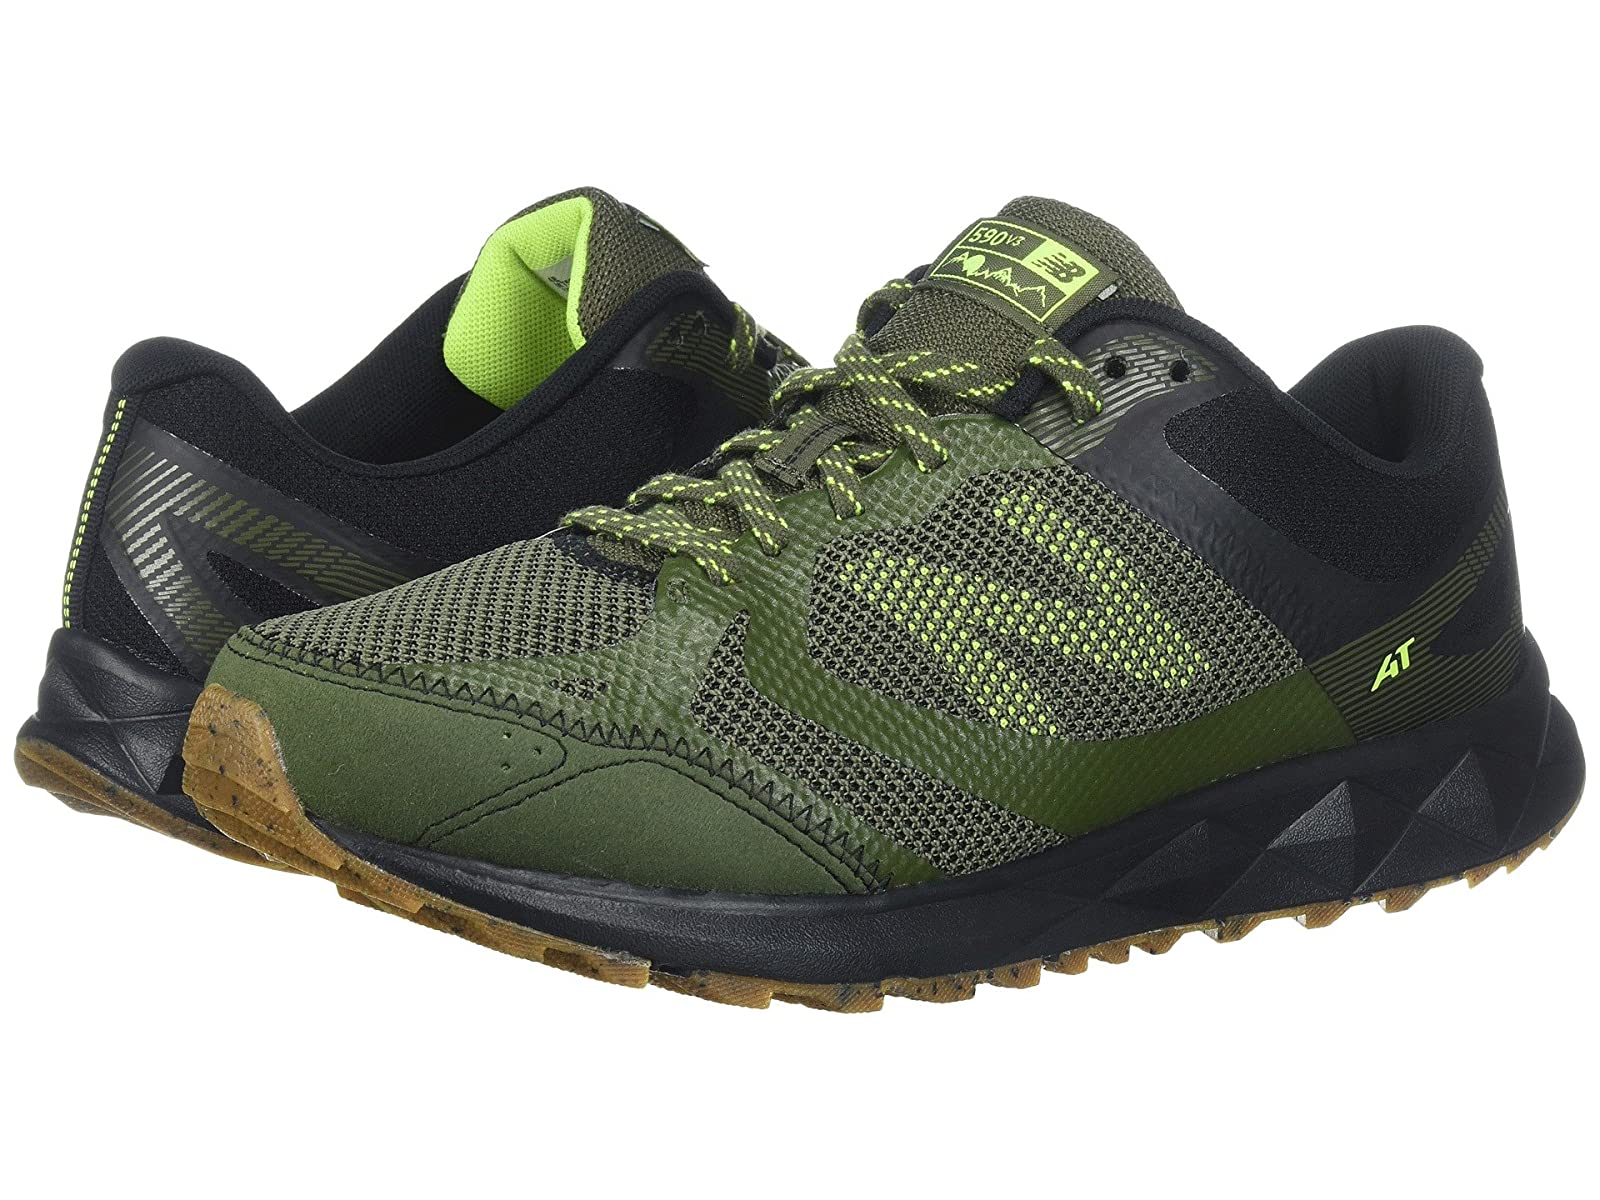 New Balance T590 v3Atmospheric grades have affordable shoes